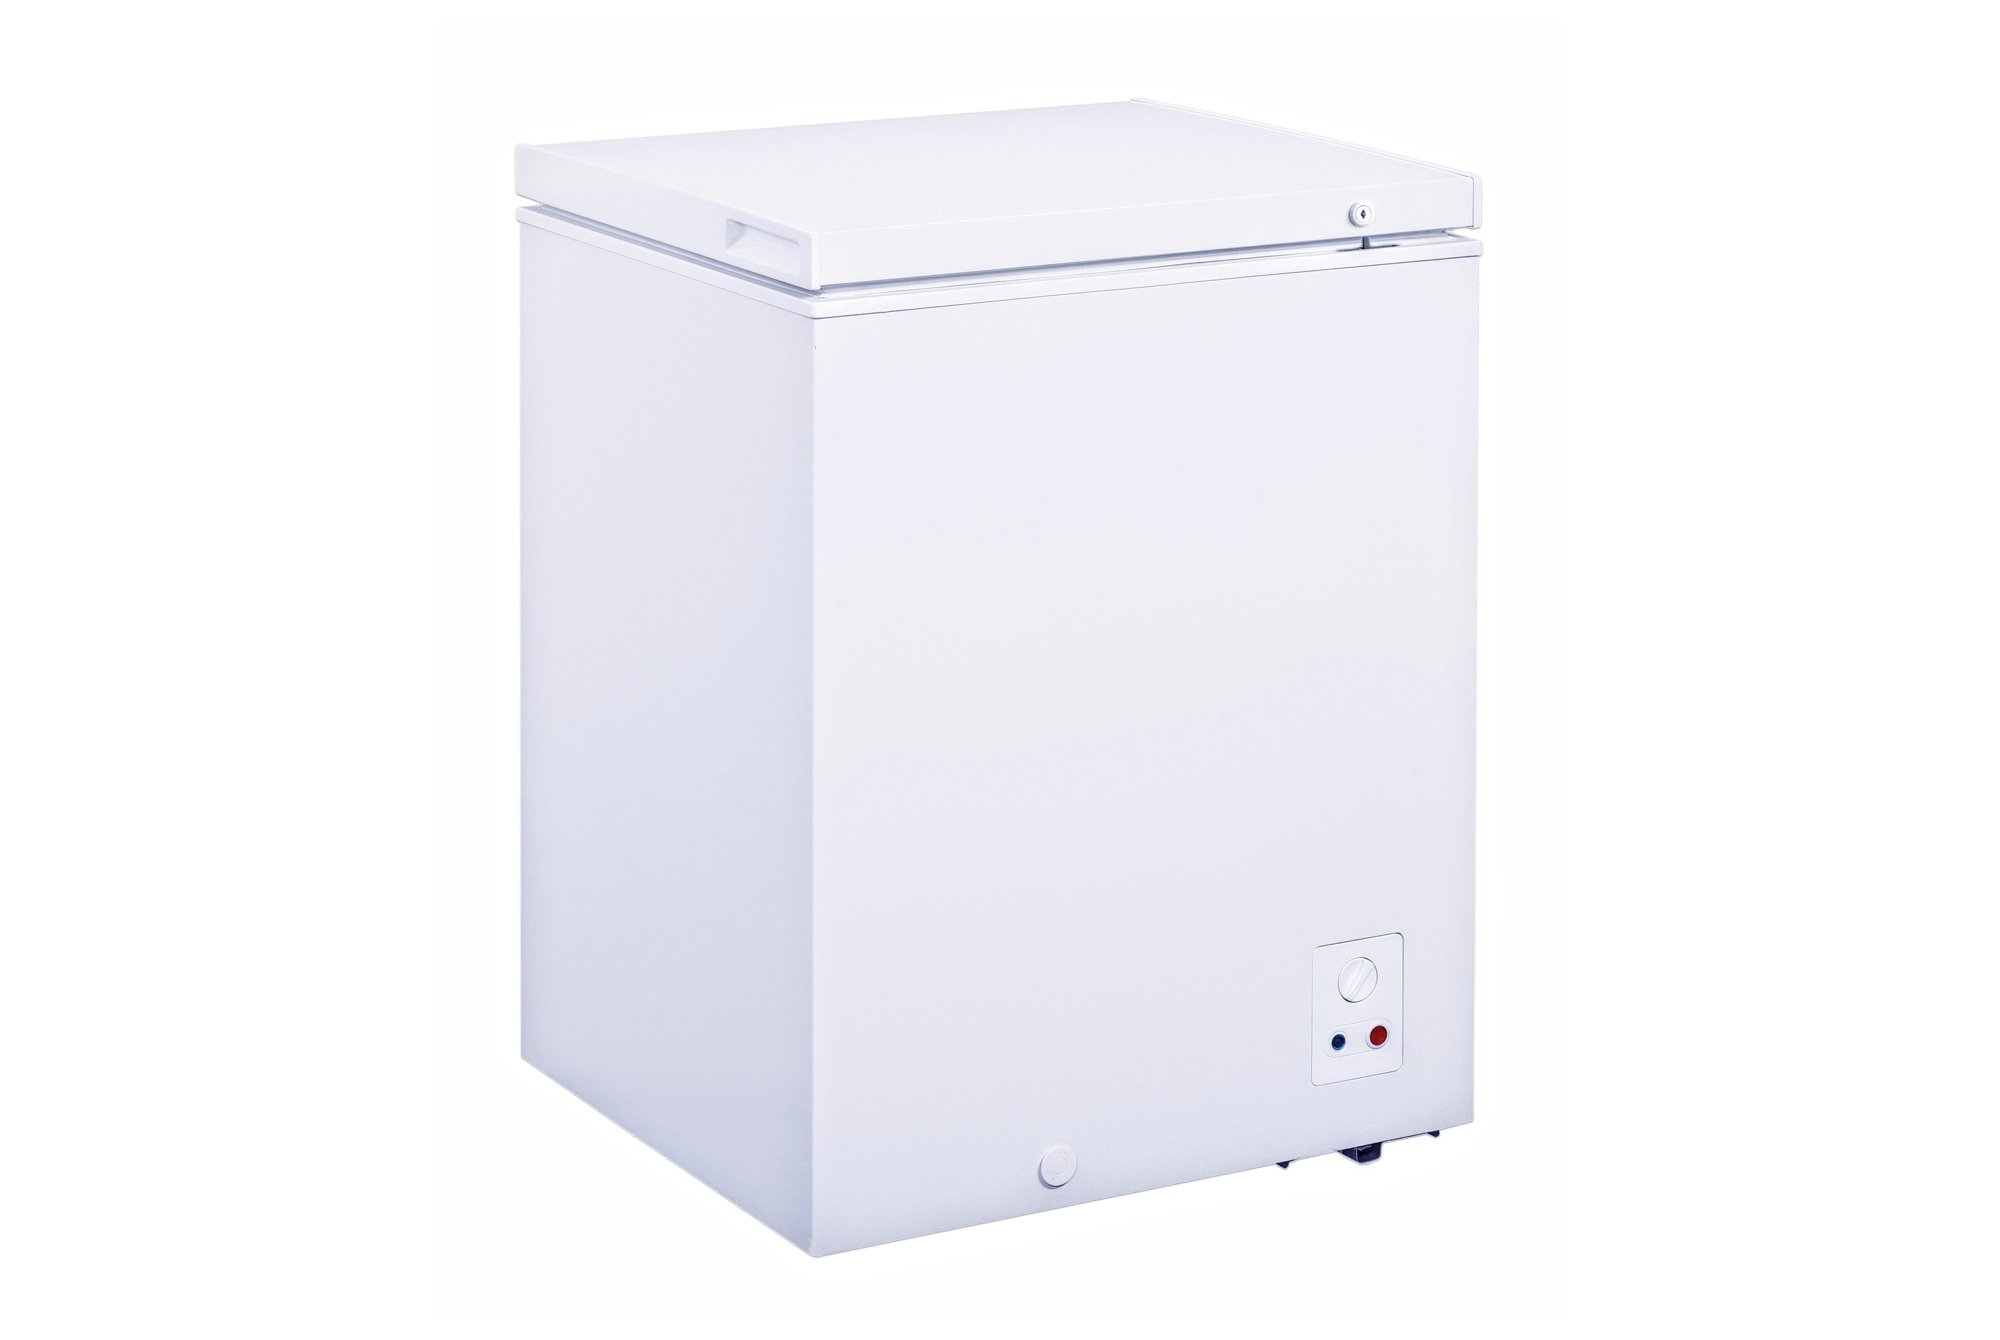 Tecno TCF 160R 160L Chest Freezer